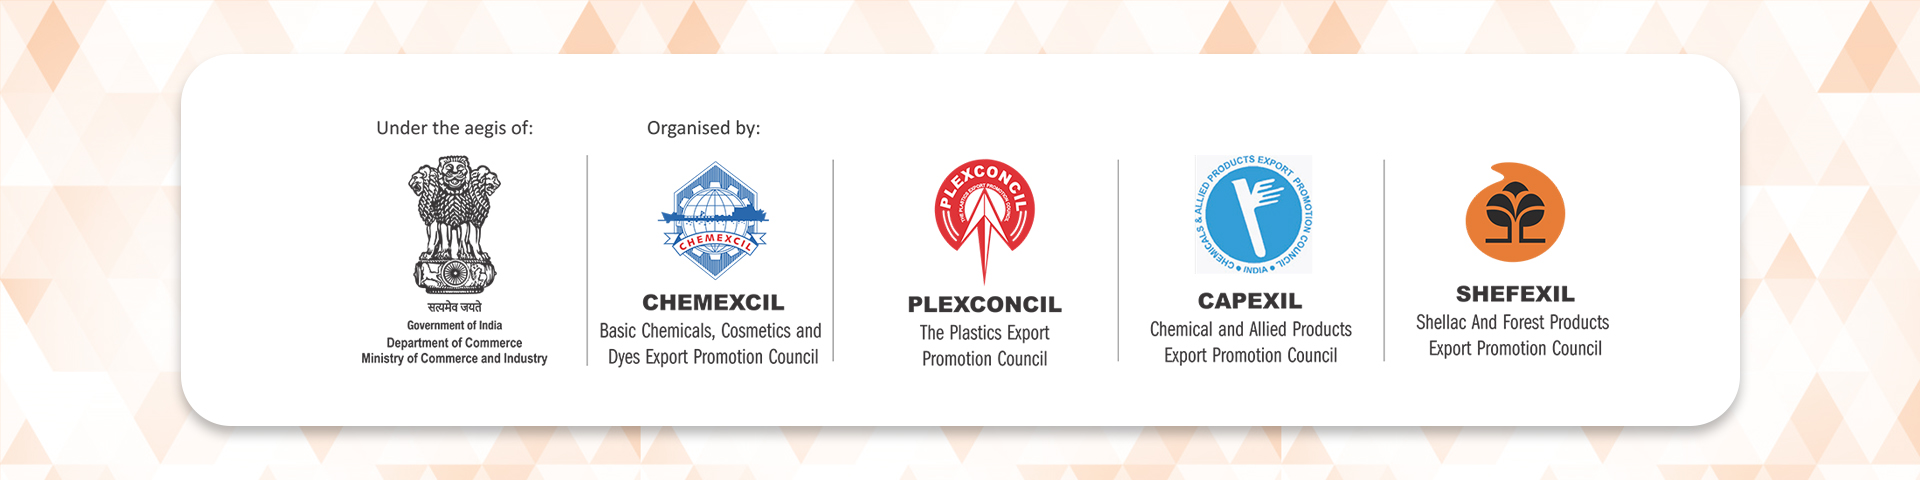 Capindiaexpo 2019 Organised by Plexconcil, Chemexcil, Capexil and Shefexil